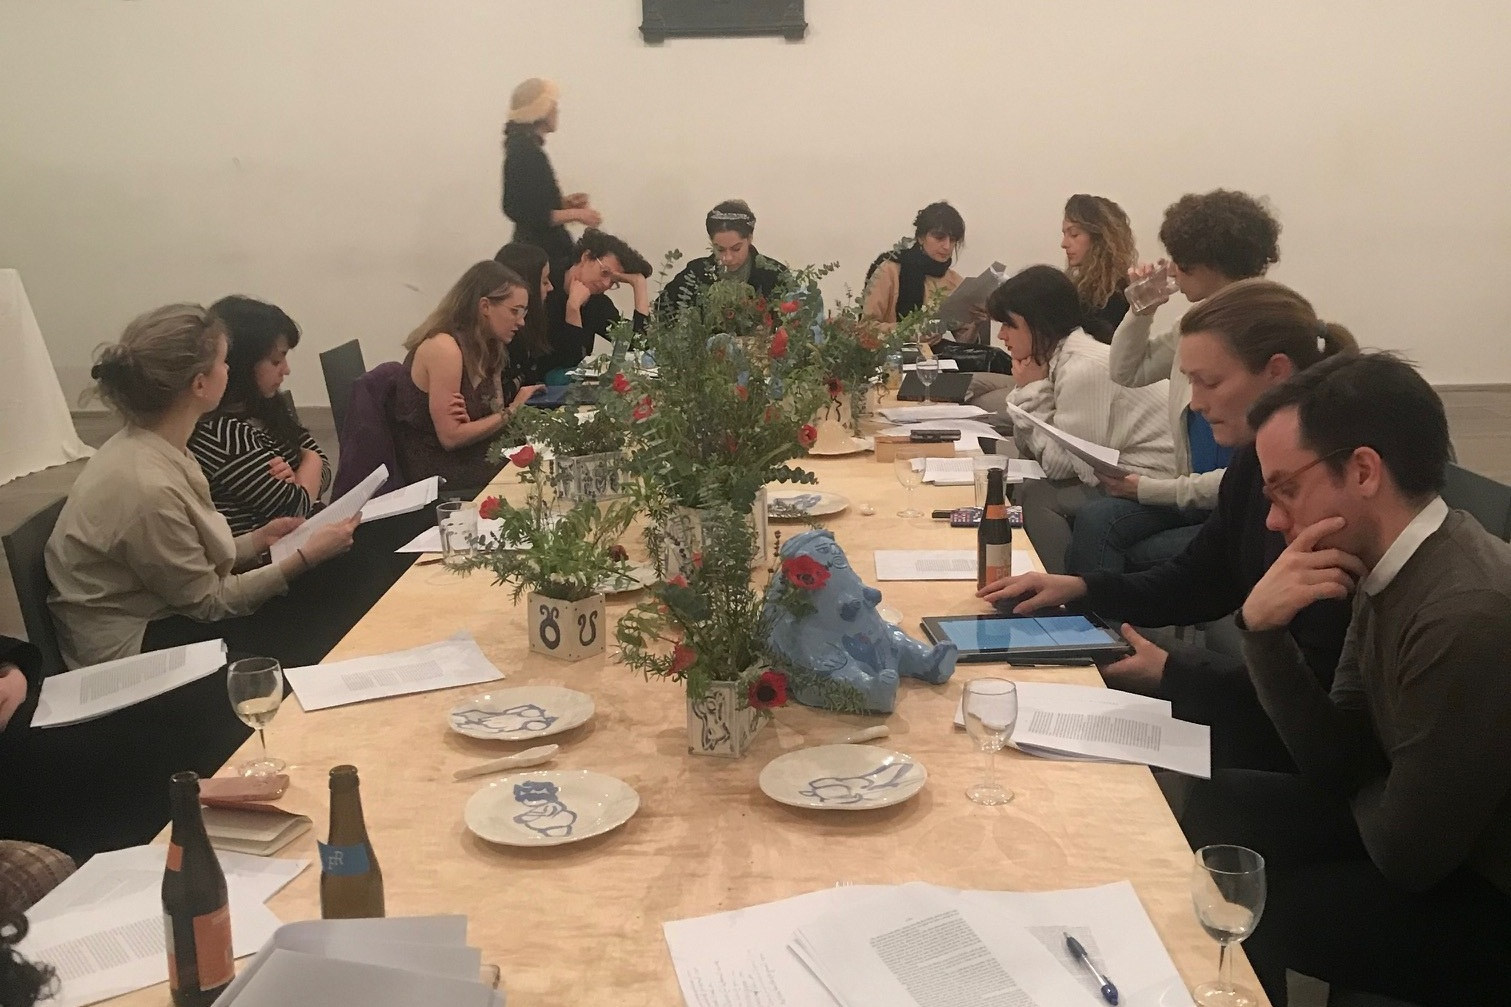 Feminist Duration Reading Group, Kurdish Feminisms Meeting 2, at the Swiss Church as part of The Table curated by Mariana Lemos. Photo: Helena Reckitt